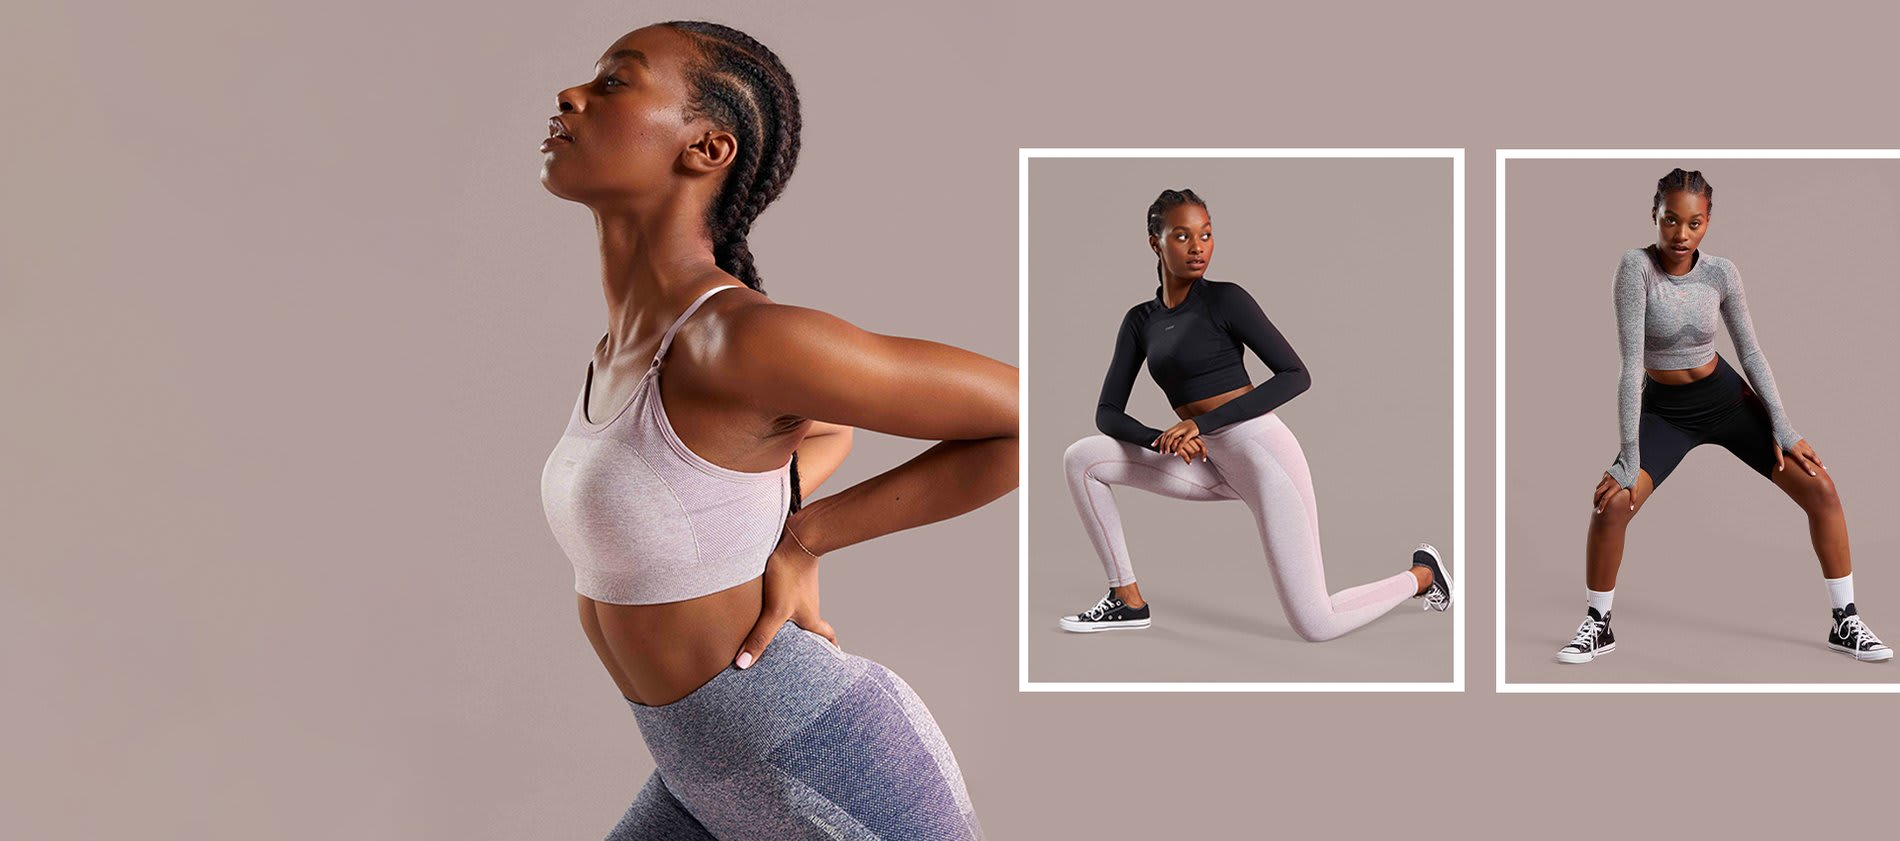 Collage of a female model posing infront of a neutral background in the new Flex collection.